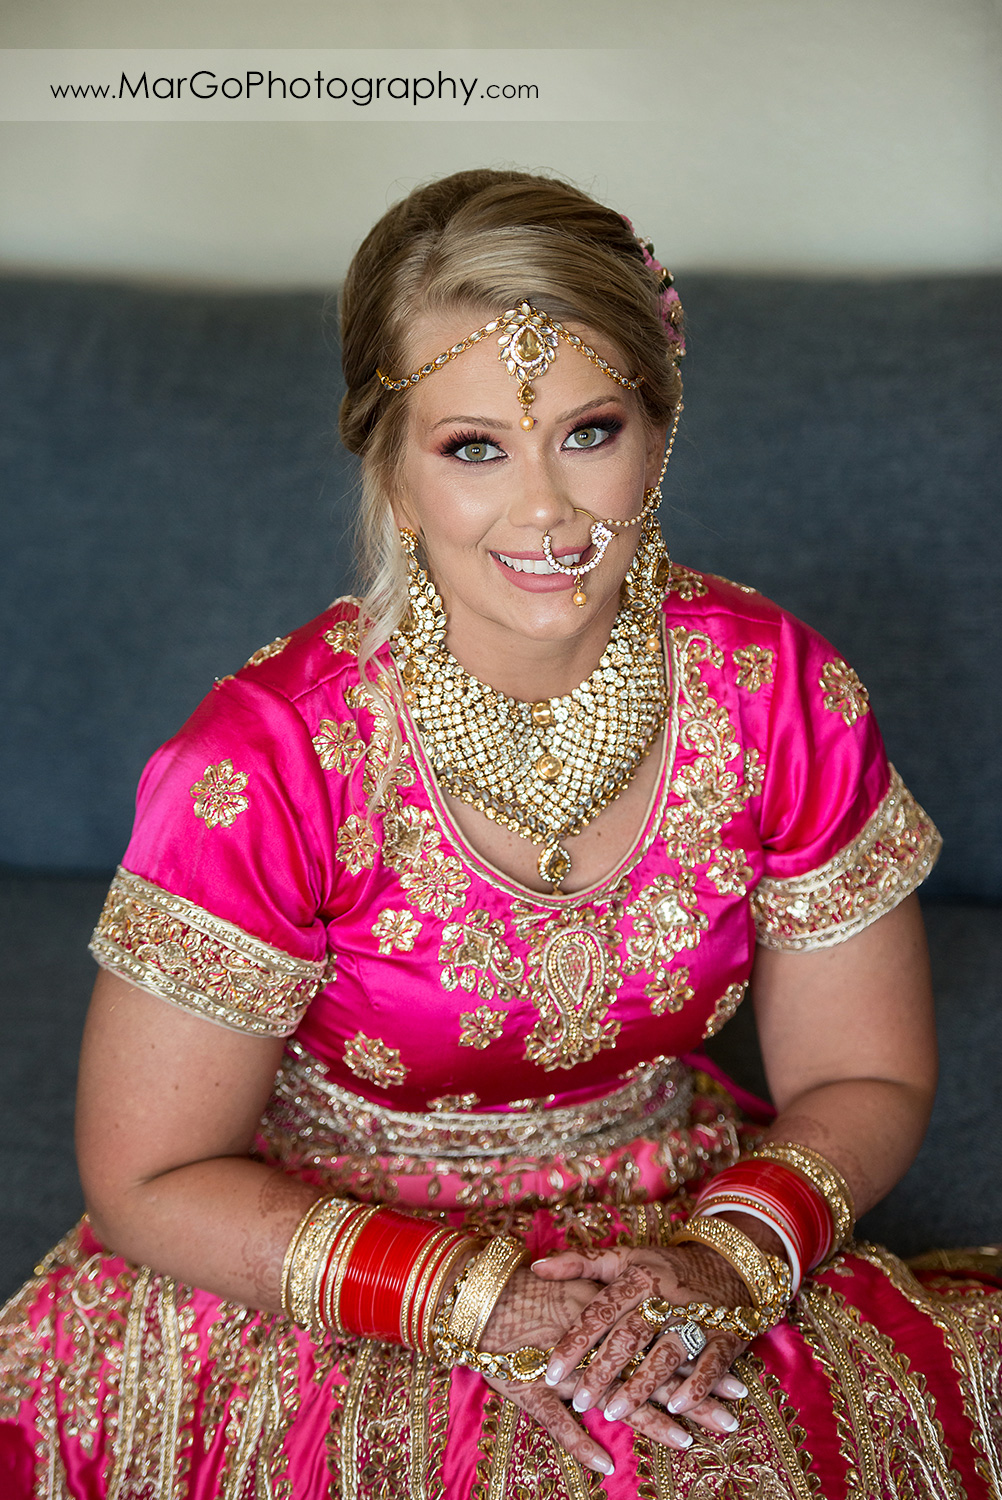 portrait of Indian bride in pink and golden dress wearing wedding jewelry